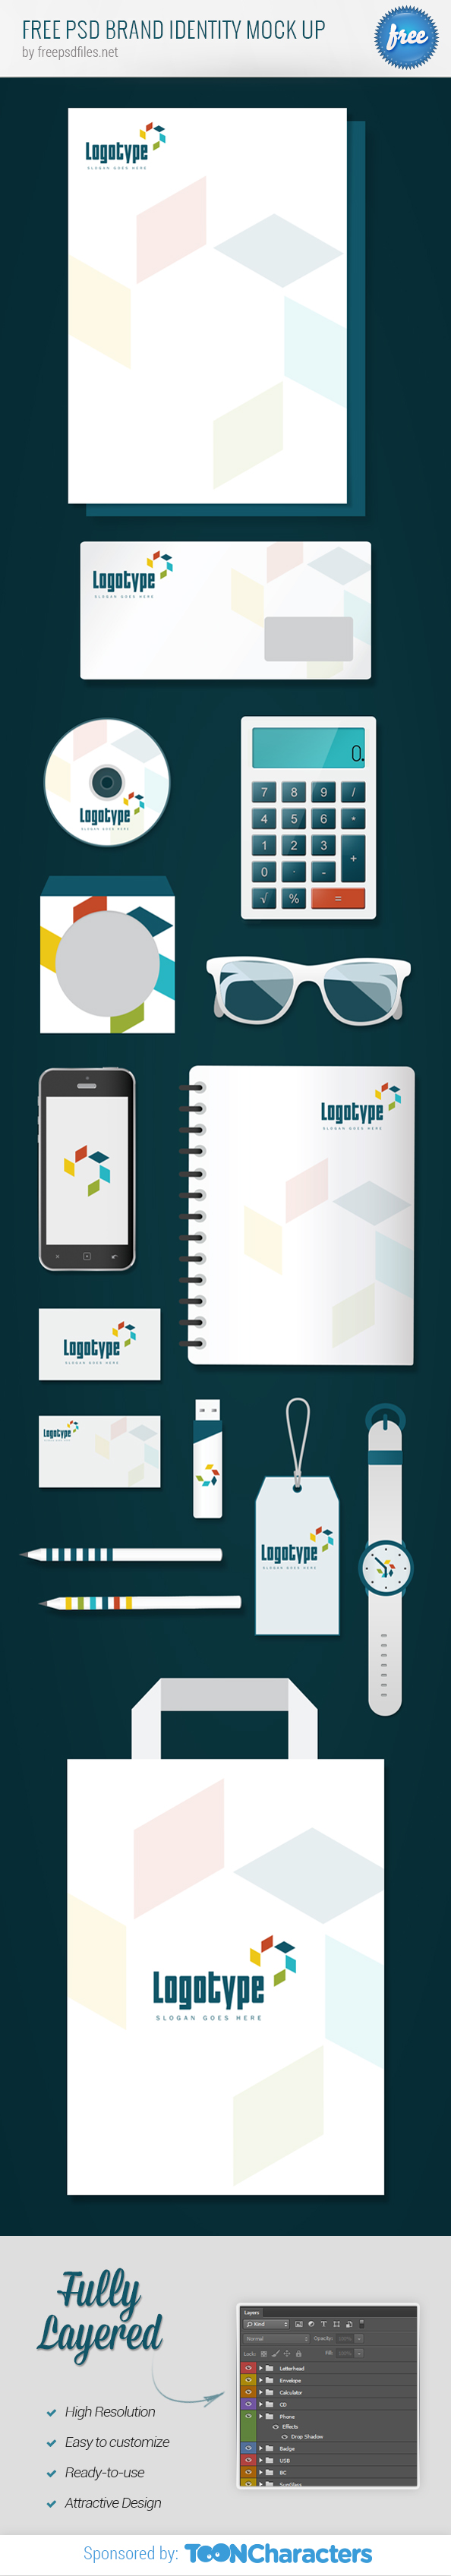 FREE PSD Brand Identity Mock up